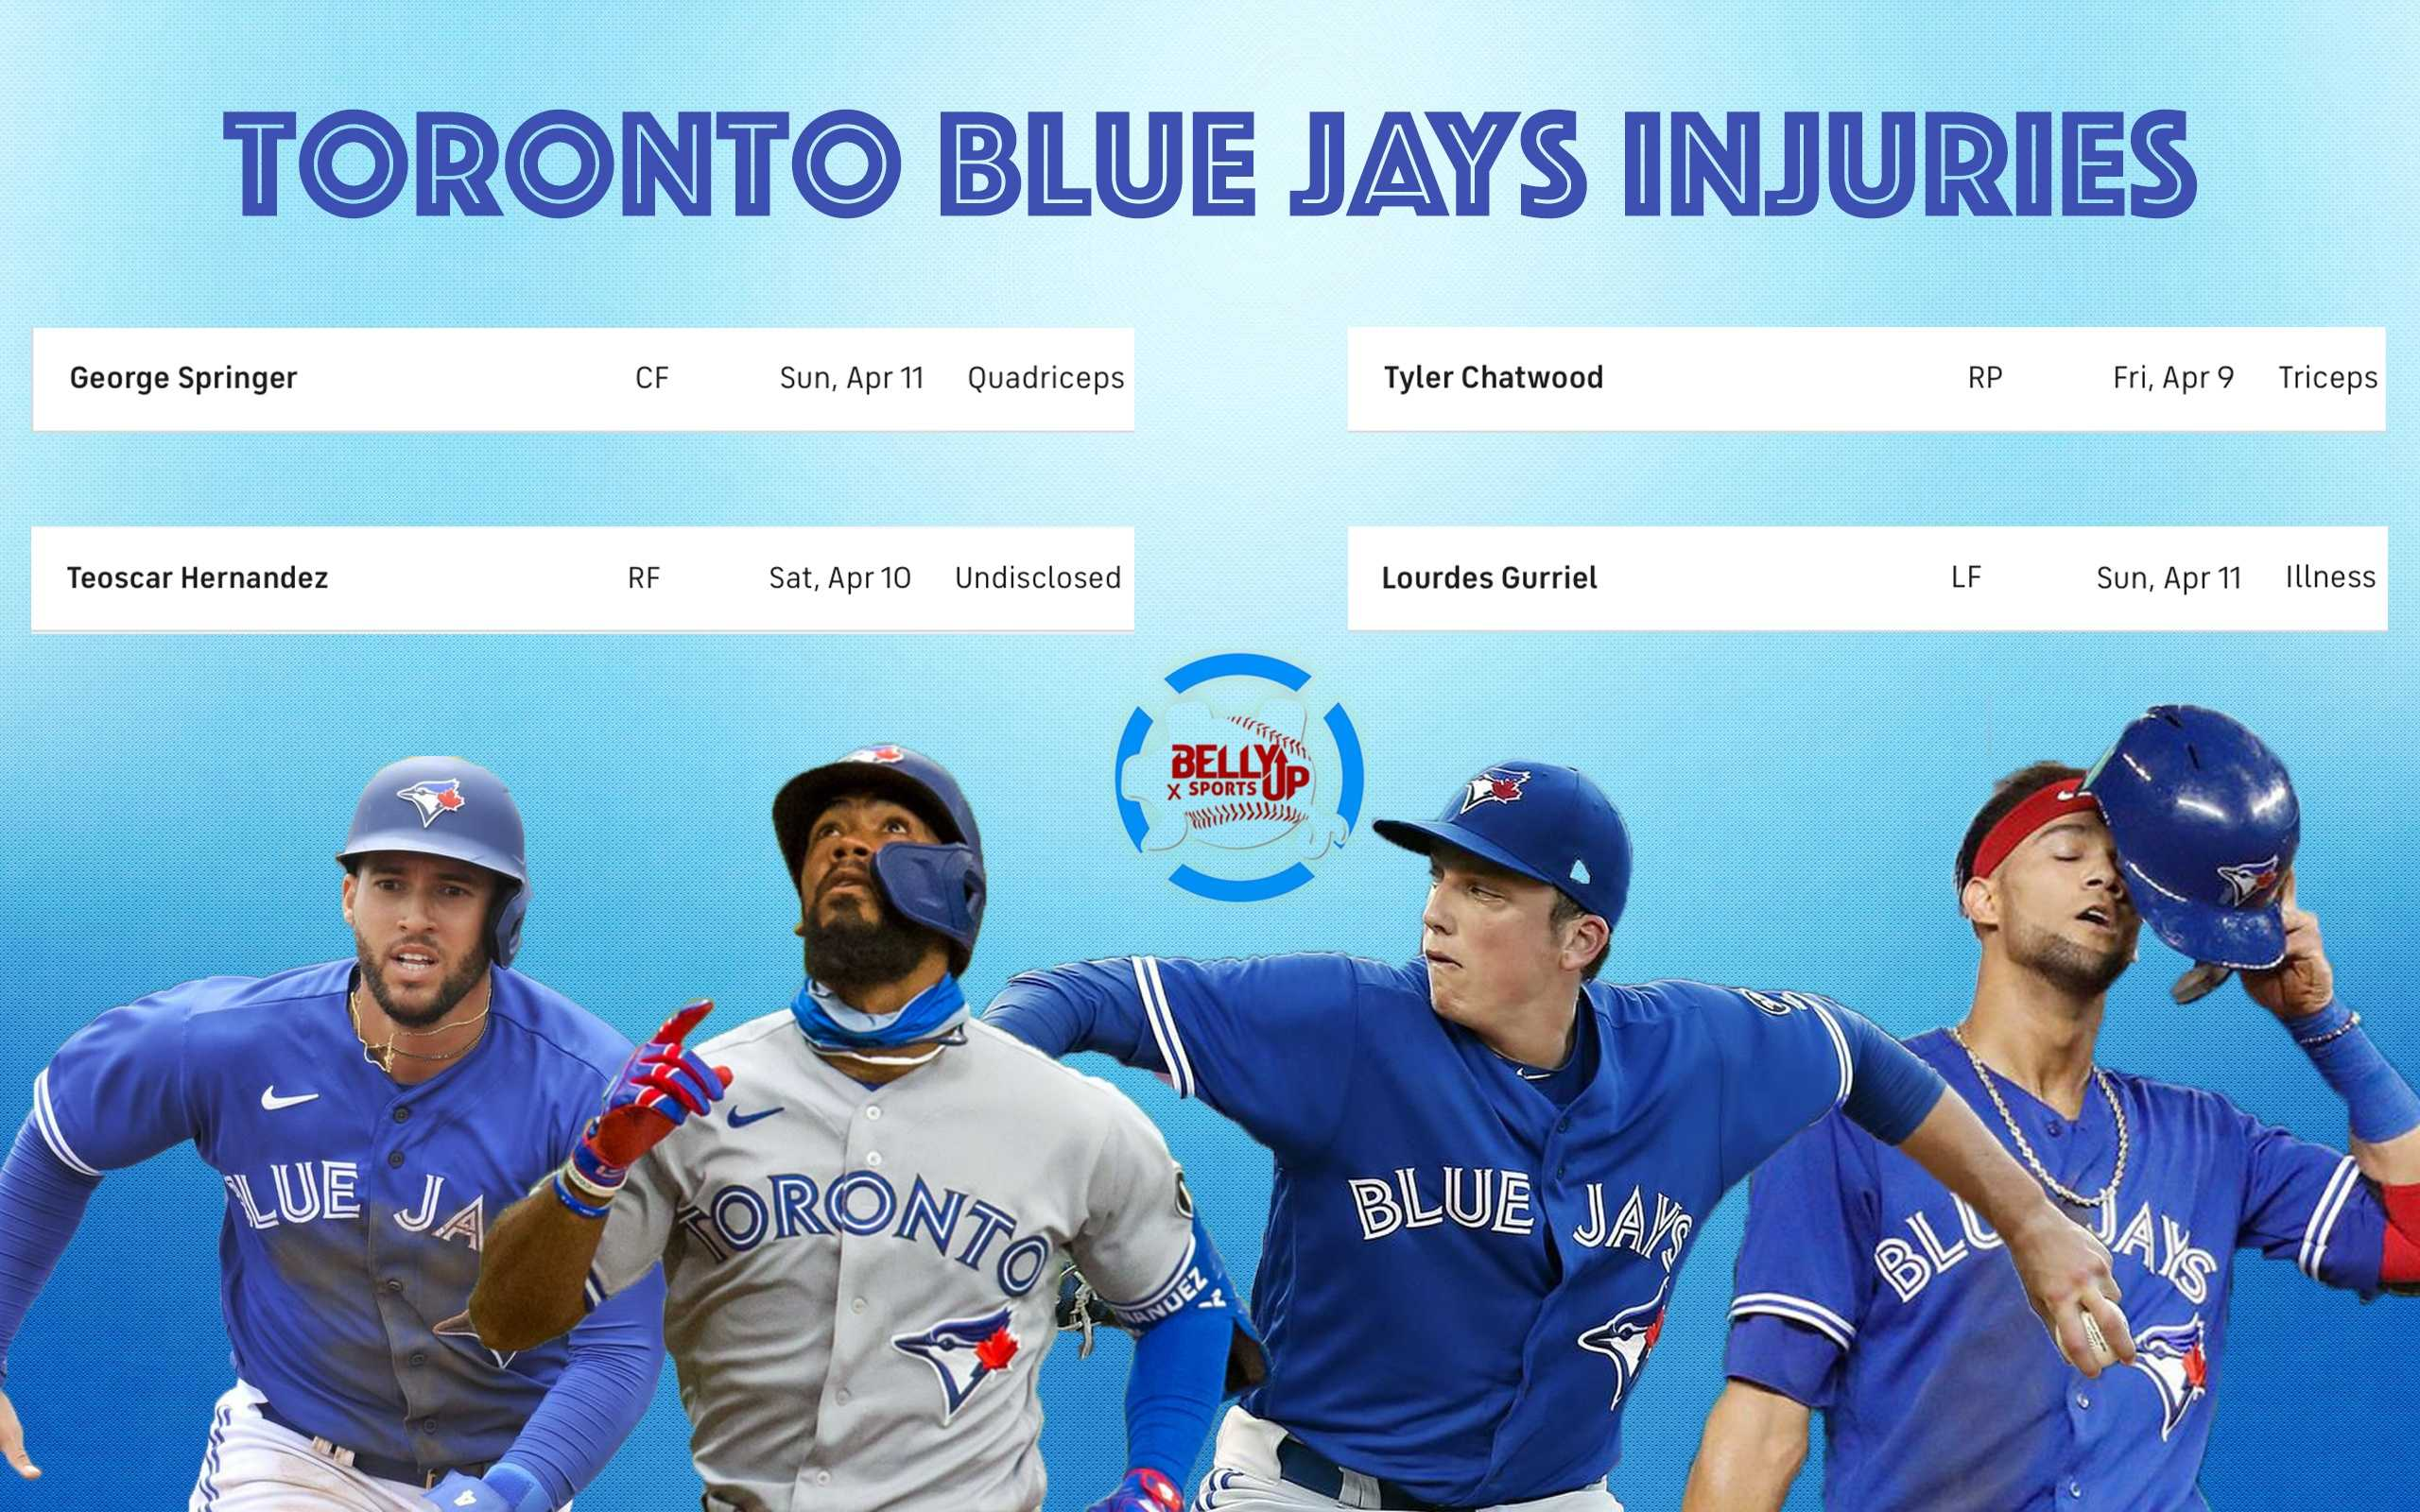 The Blue Jays are getting hammered with injuries